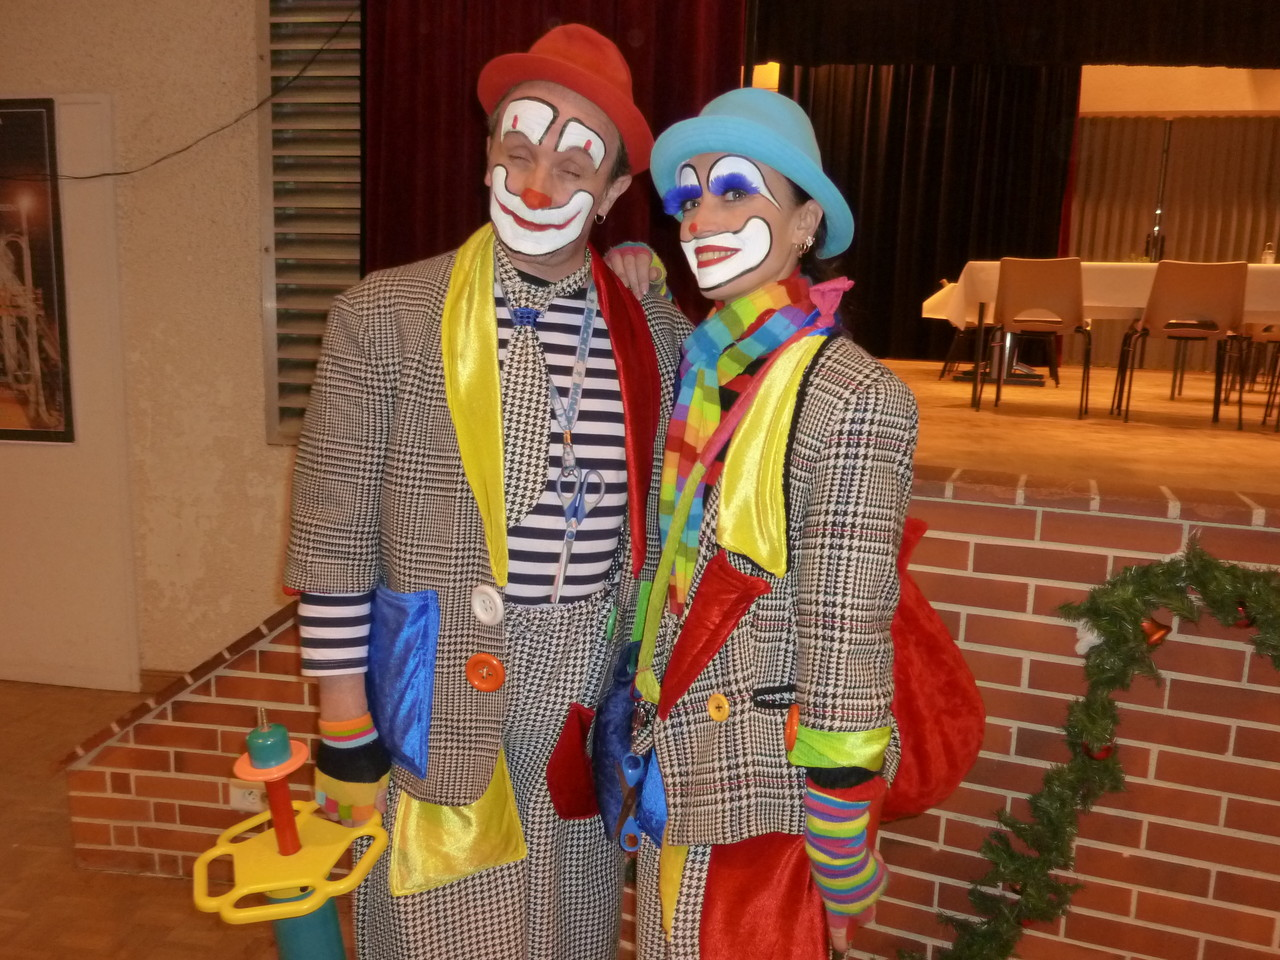 Le couple des clowns